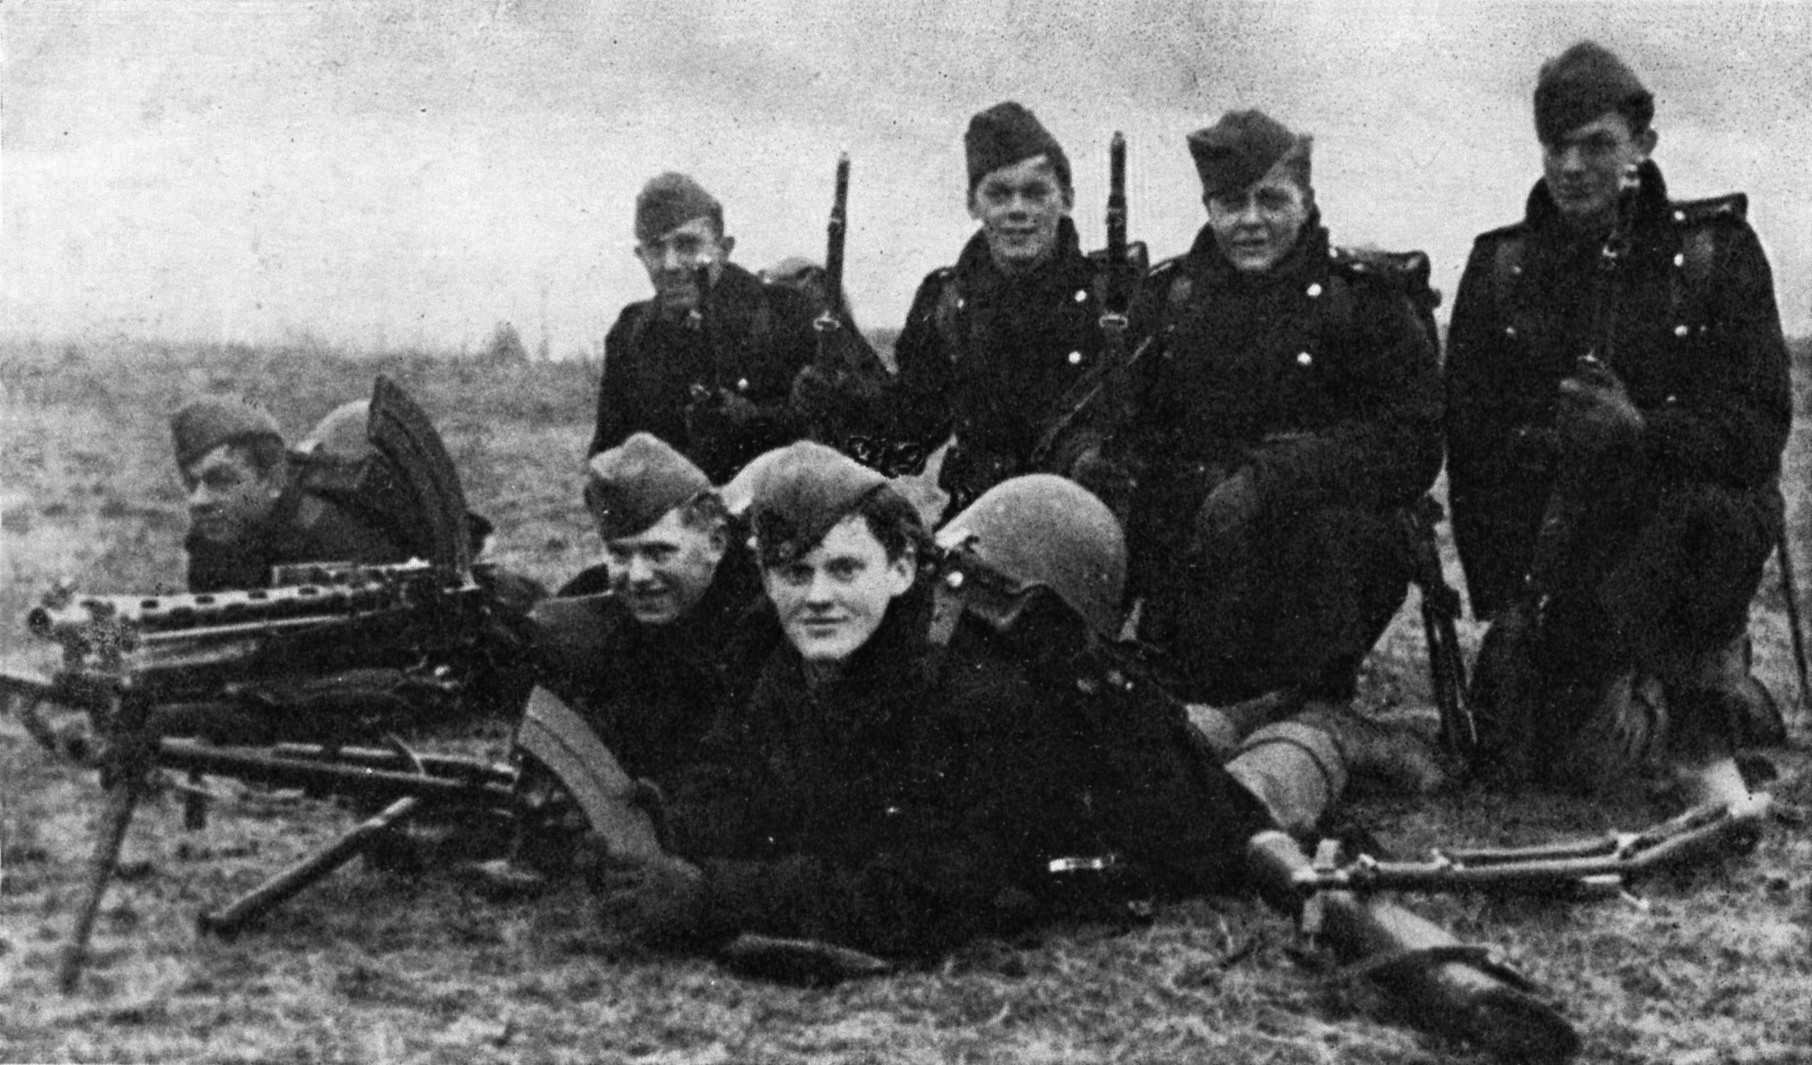 Danish_soldiers_on_9_April_1940